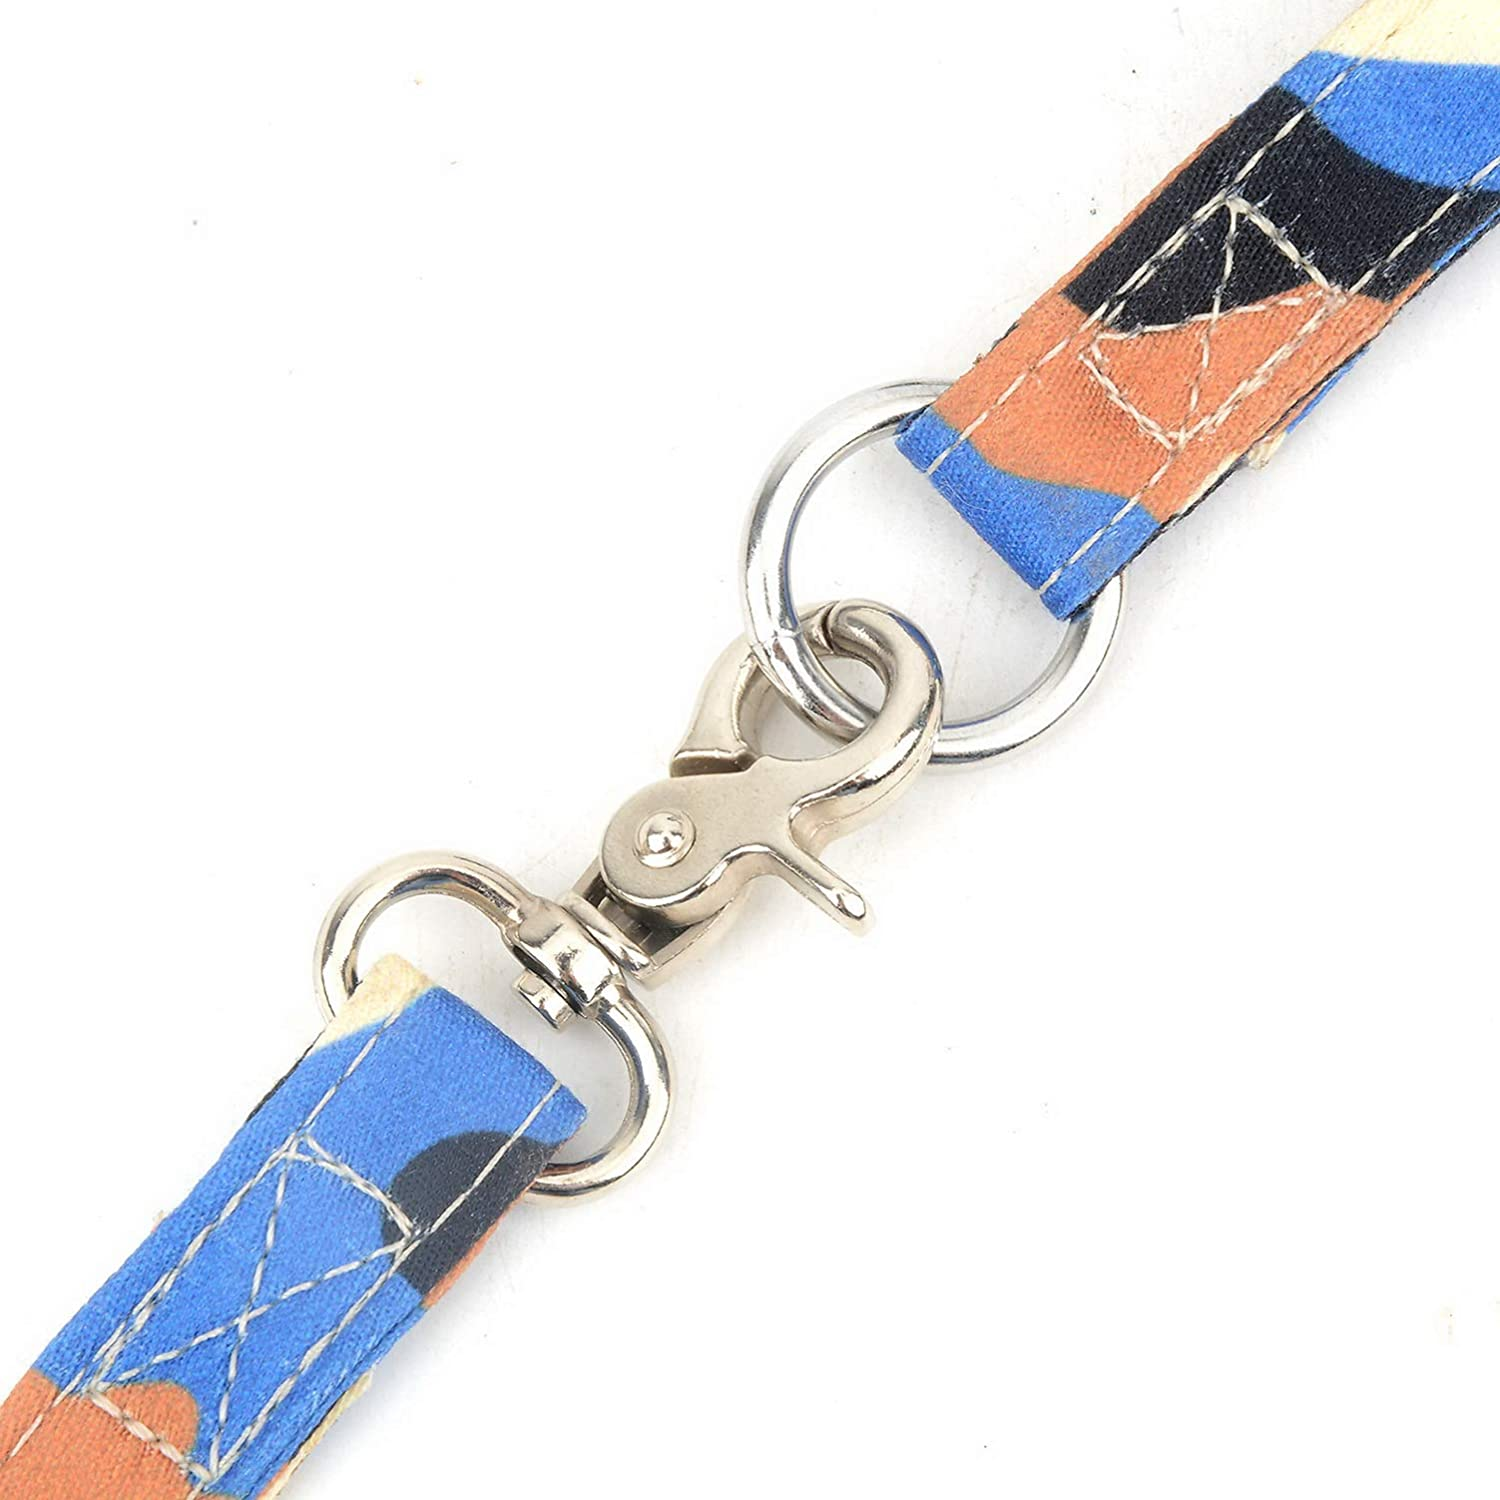 smalllee/_lucky/_store New Soft Mesh Nylon Vest Pet Cat Small Dog Harness Dog Leash Set Leads Camo Blue S